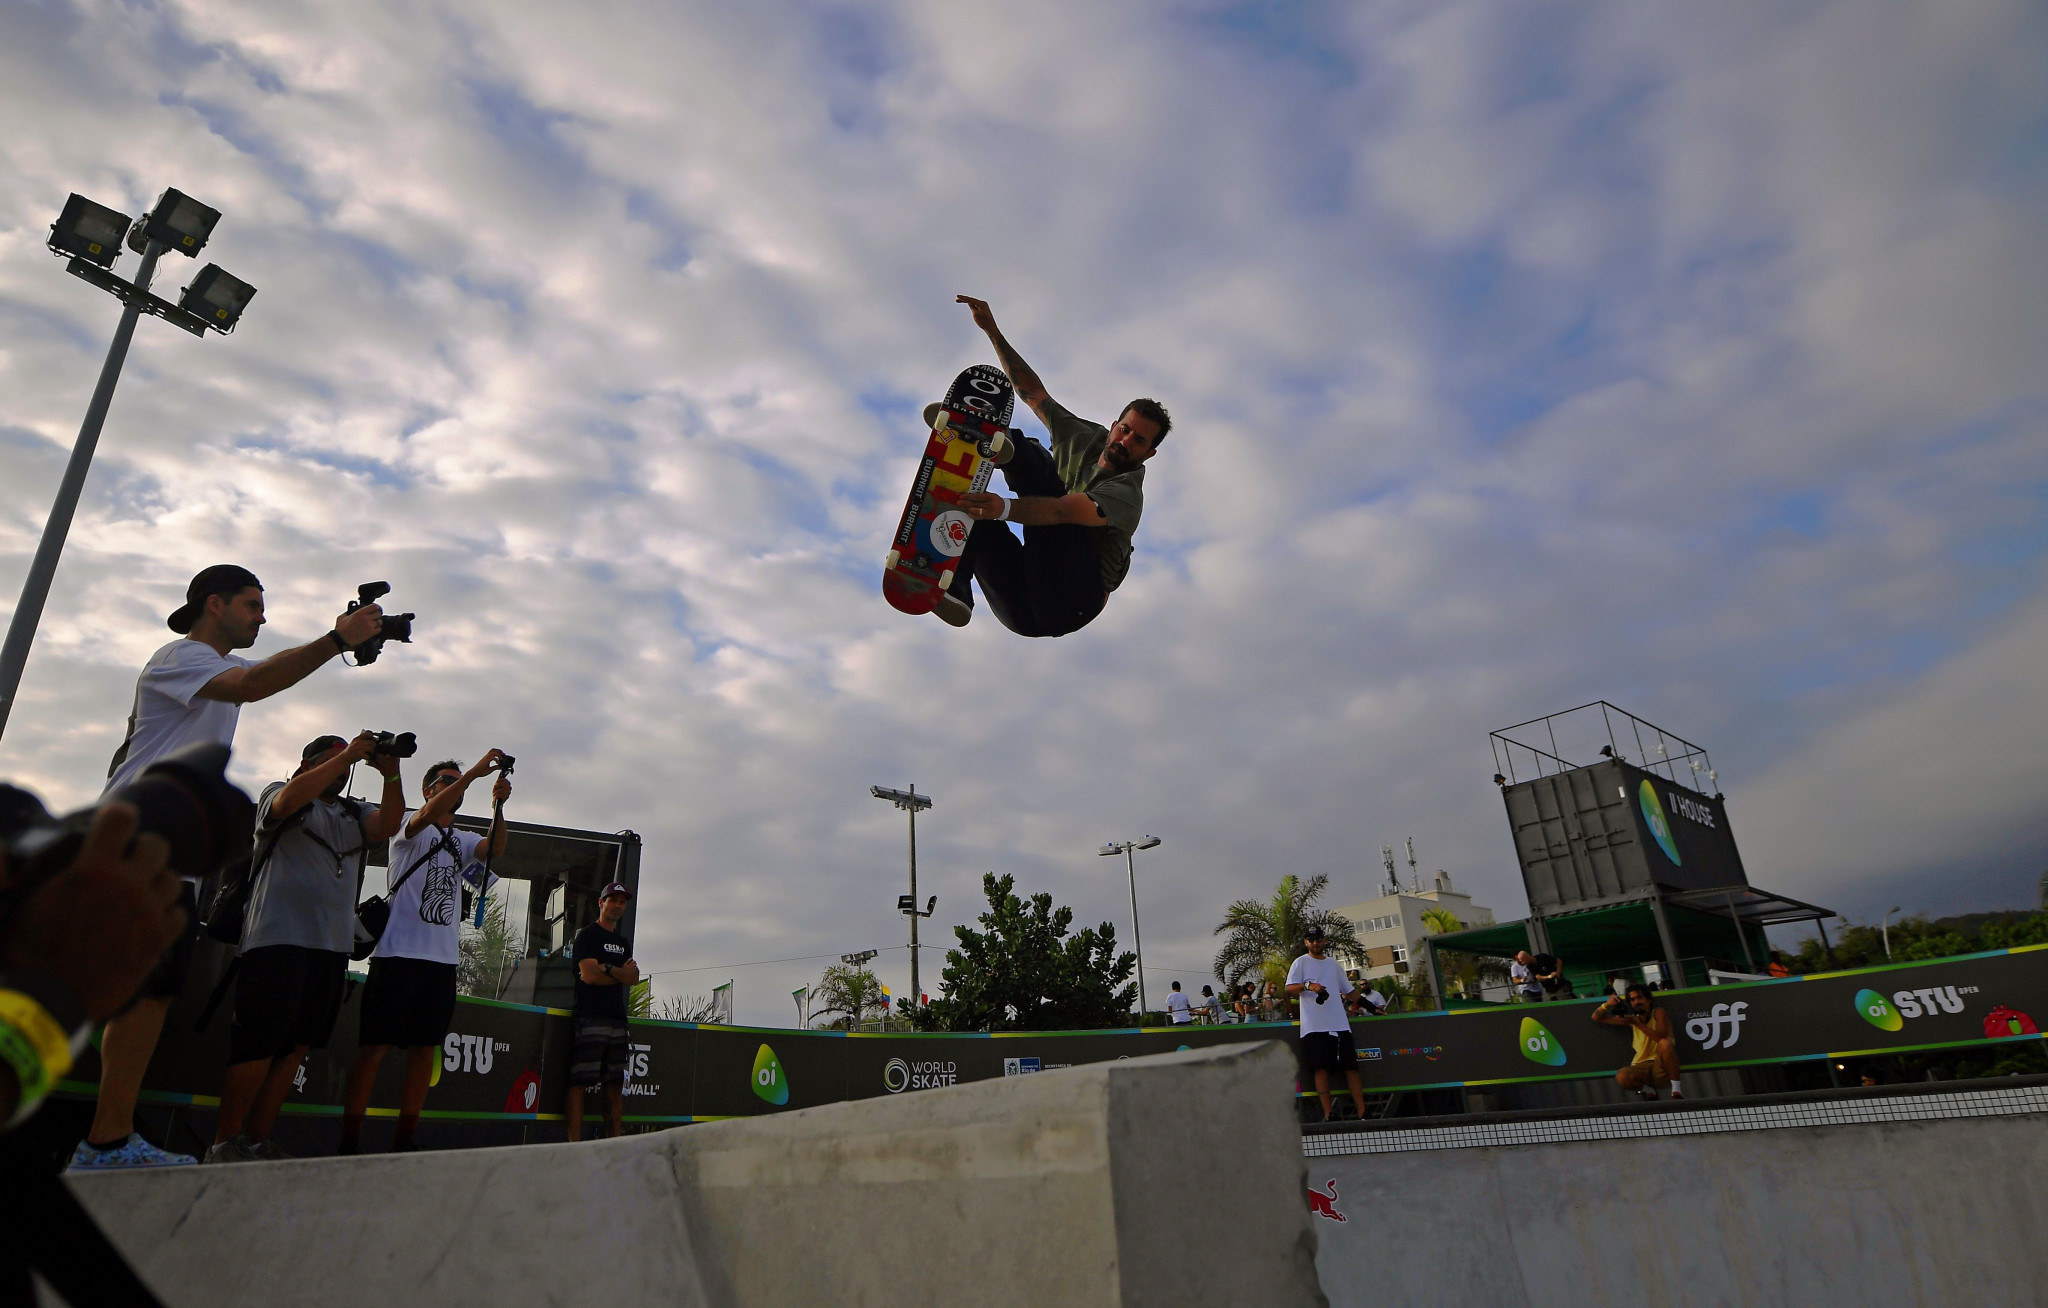 Skateboarding is on the programme at both the World Urban Games and World Beach Games ©Getty Images